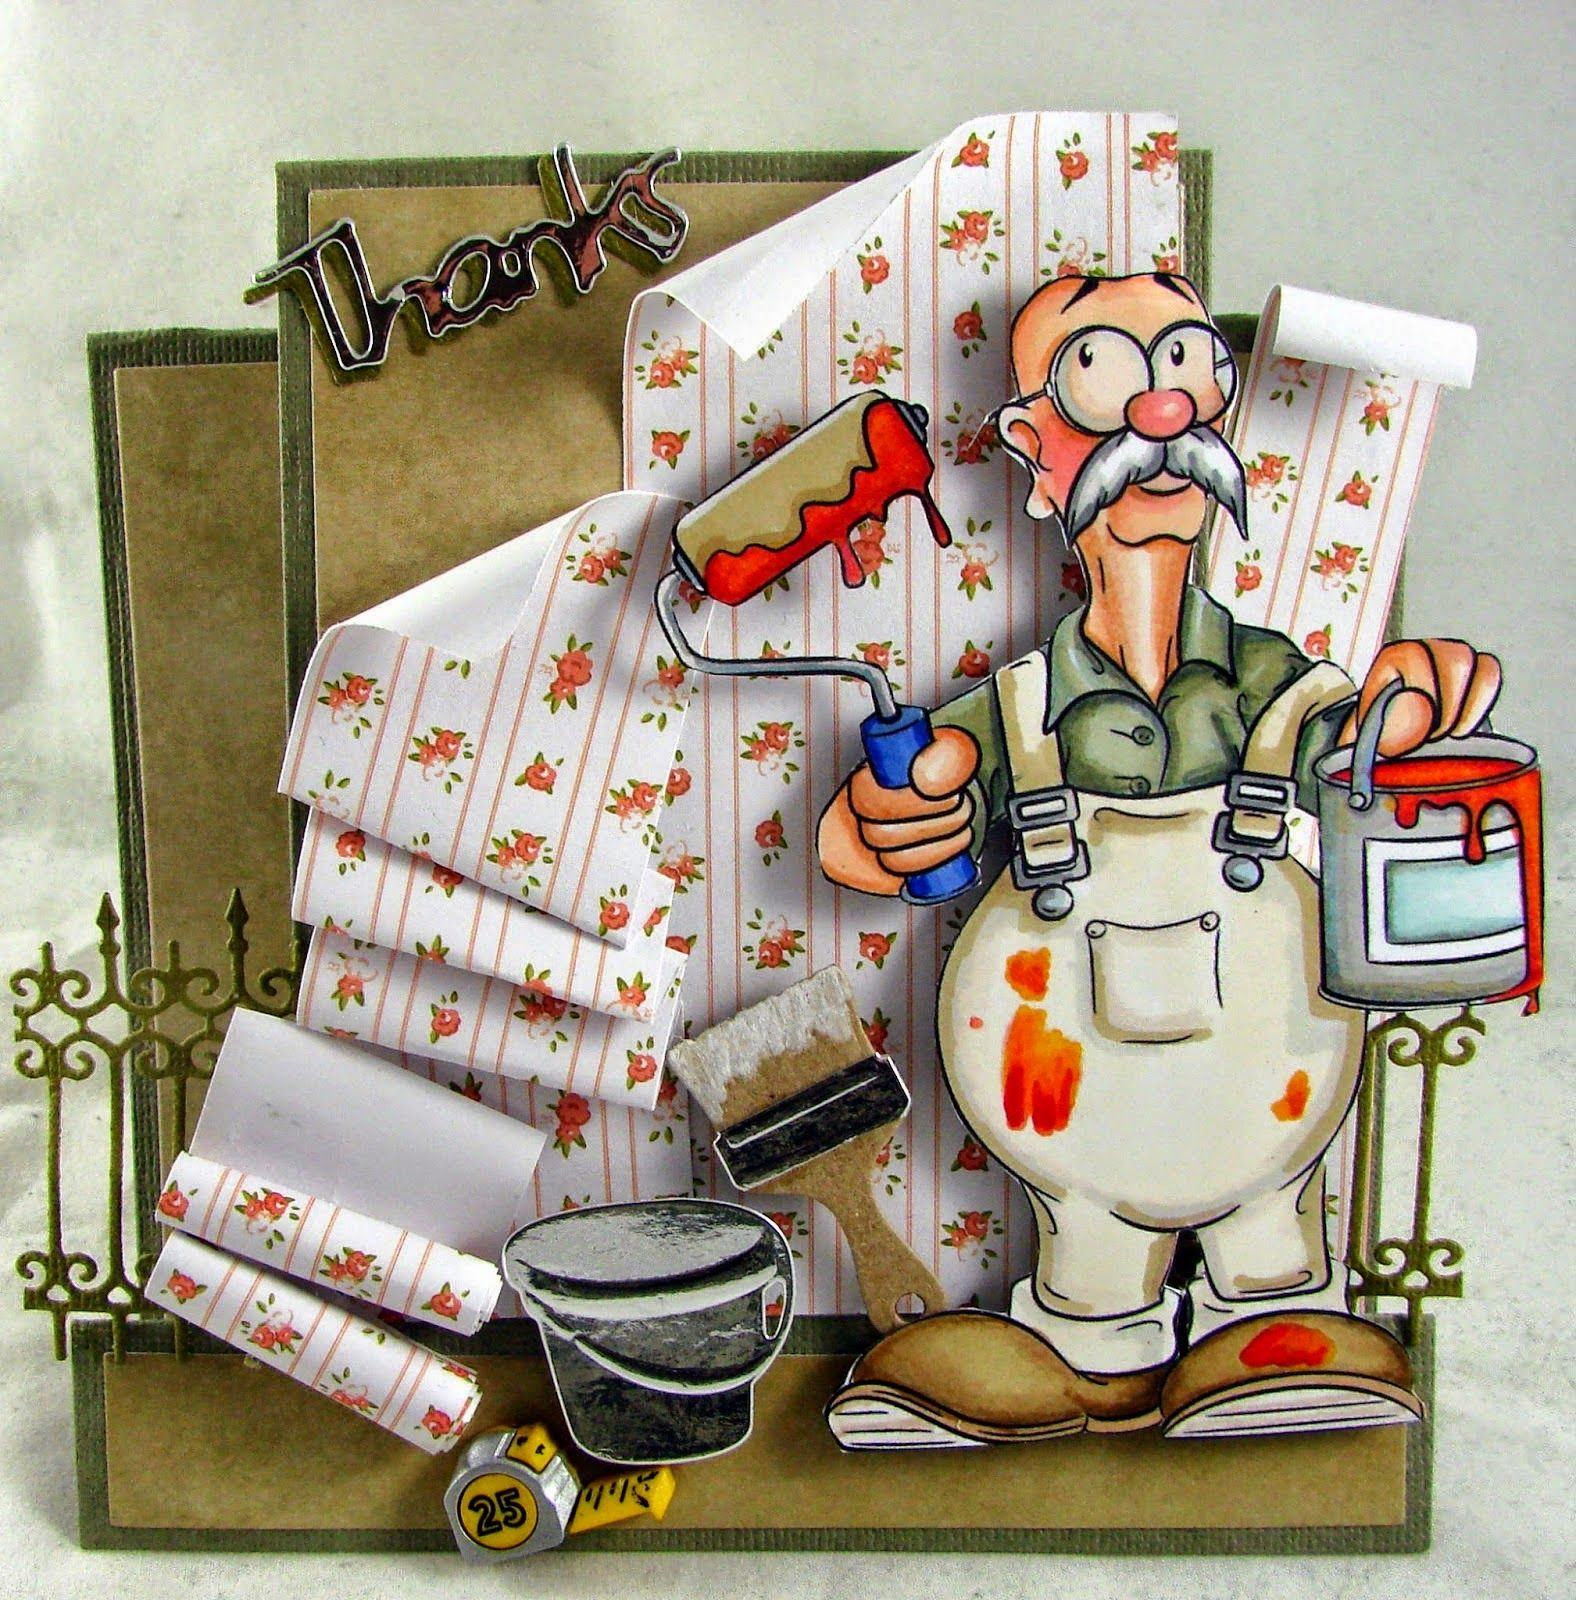 """Dunderton Decorators Ltd"" digi stamp http://www.doctor-digi.com/-dunderton-decorators-ltd-digital-stamp Card by Gudrun http://artesaniaskarten.blogspot.de/"